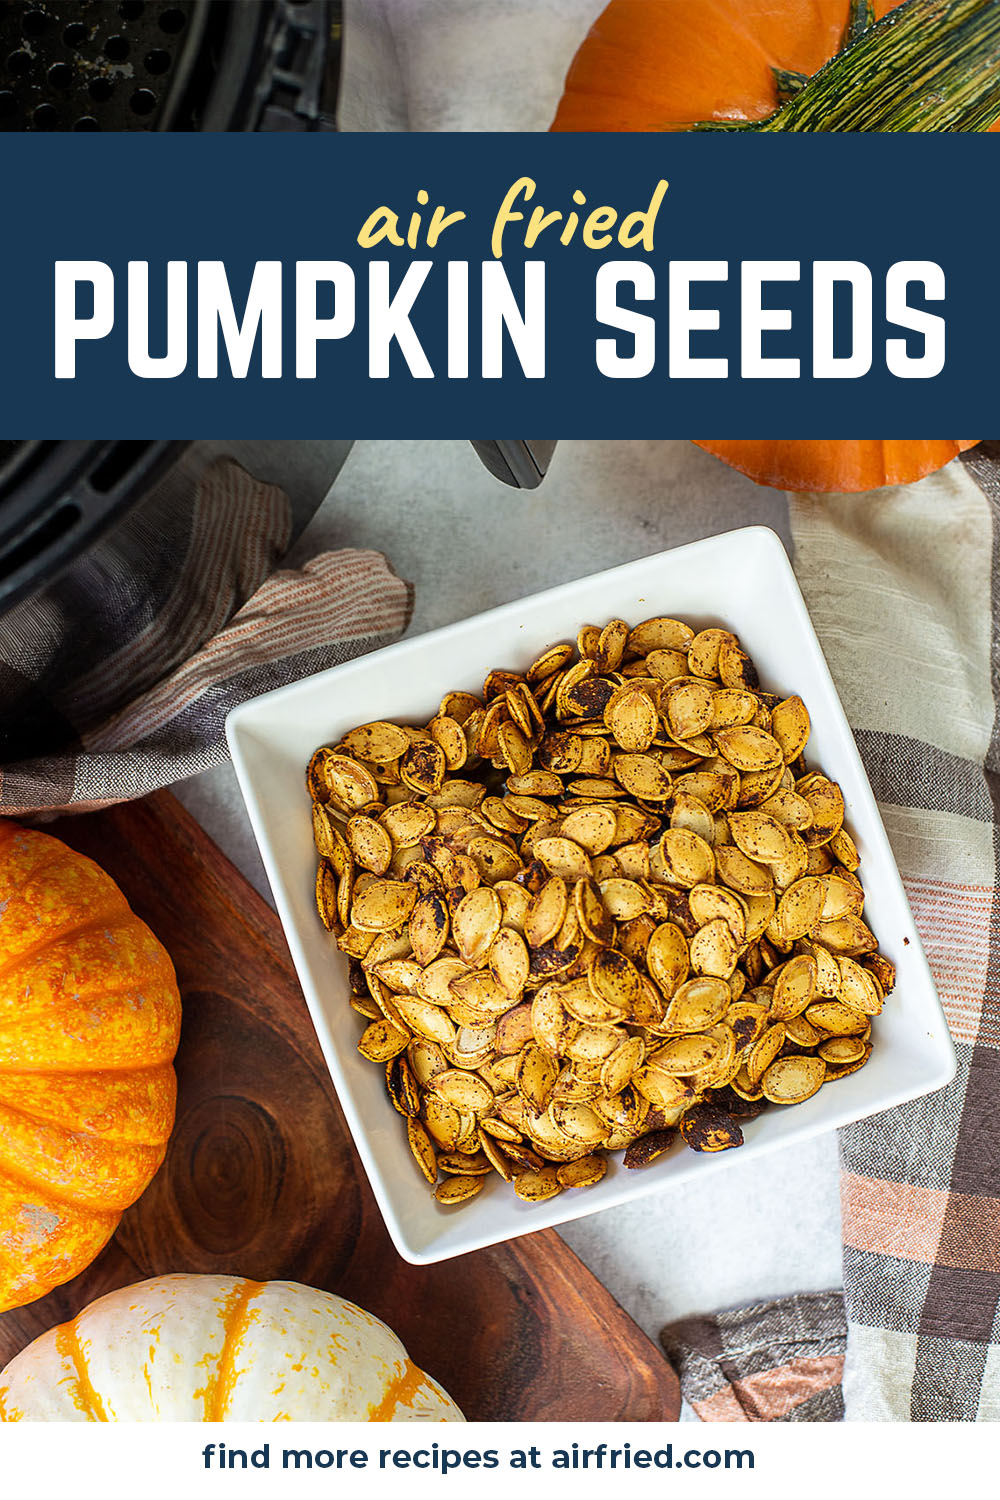 Make these air fryer pumpkin seeds as an extra treat after you finish carving your pumpkins!